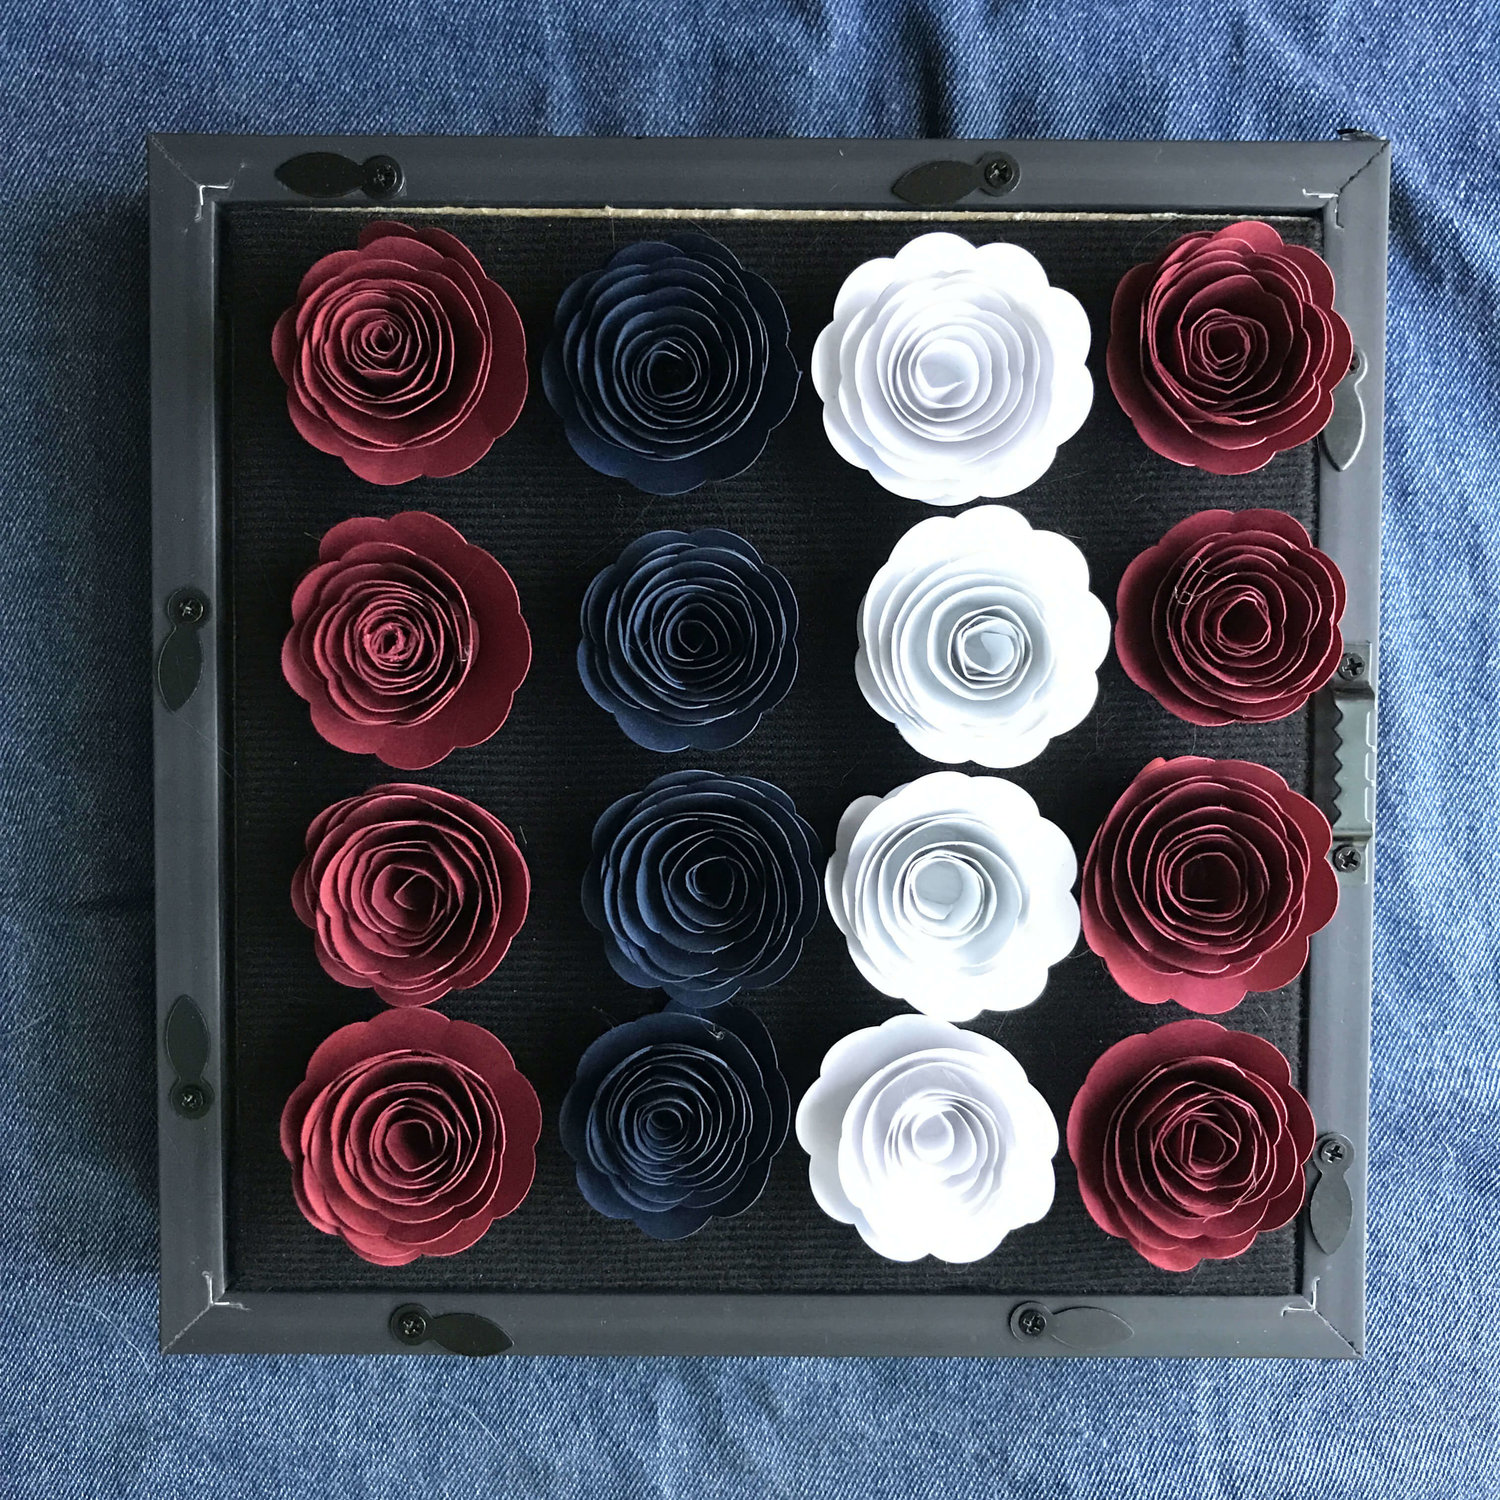 Patriotic Paper Flower And Star Shadowbox Day To Day Adventures